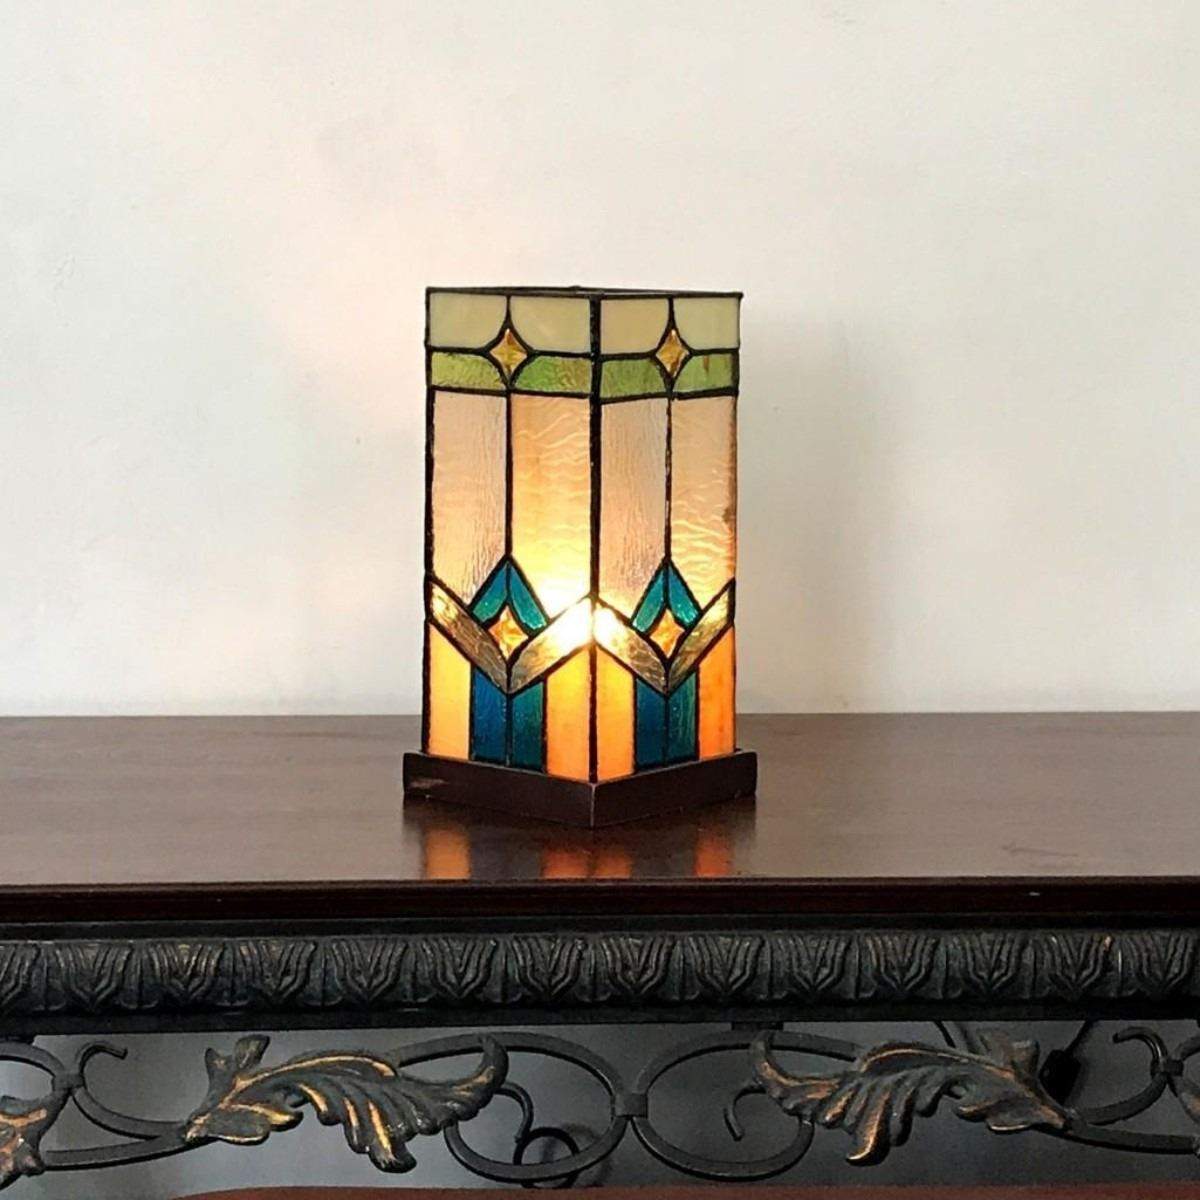 gregory tiffany glass accent pedestal light mission table lamp lamps tall cherry end tables queen anne wrought iron frame coffee kijiji teal corner adjustable drum stool big